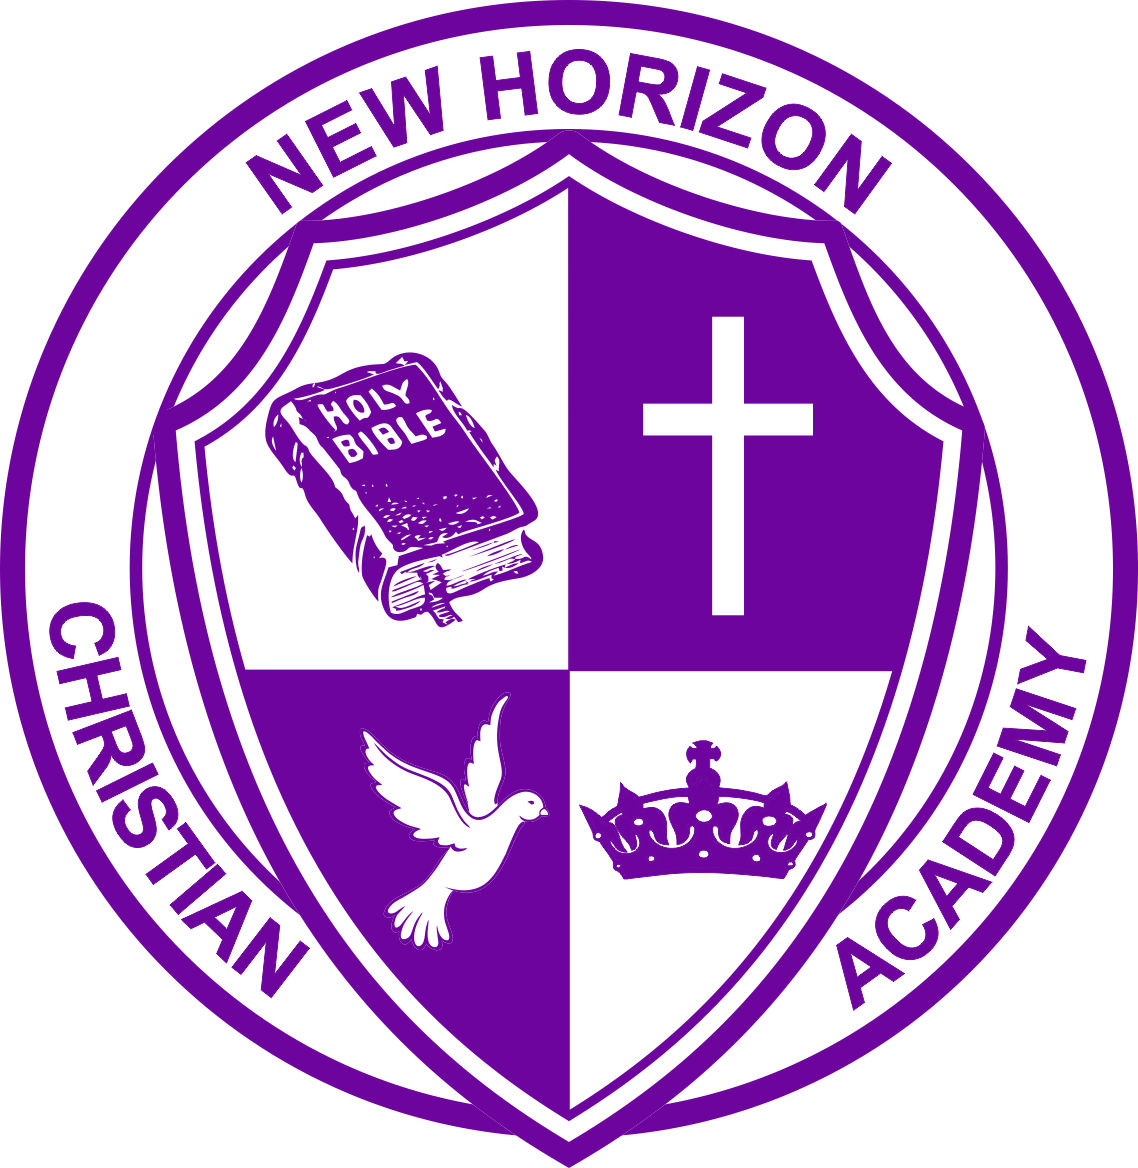 New Horizon Christian Academy